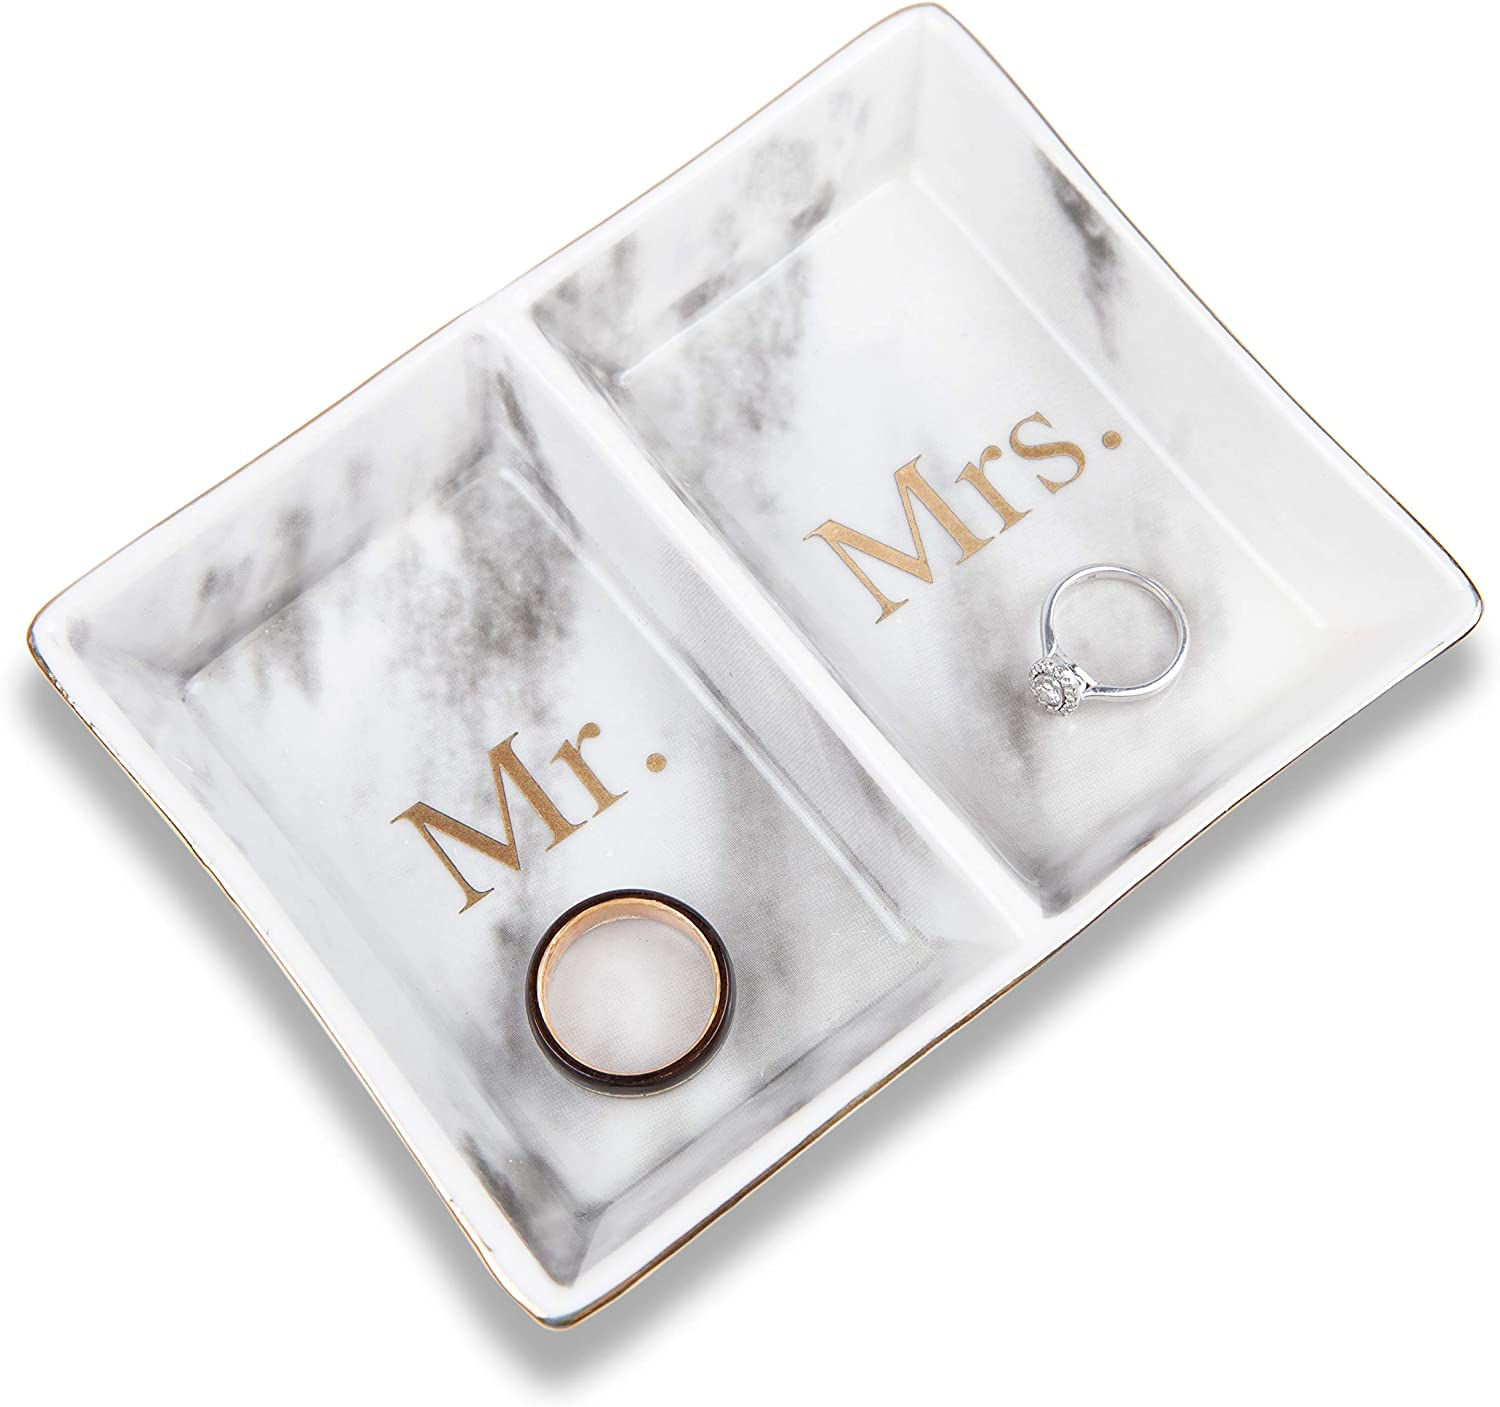 Aller Home & Kitchen Mr. & Mrs. Ring Dish Jewelry Plate (Marble Design) - His and Hers Two Section Trinket Tray for Wedding and Engagement Rings, Earrings, Bracelets, Necklaces, Watches, Couples Gifts